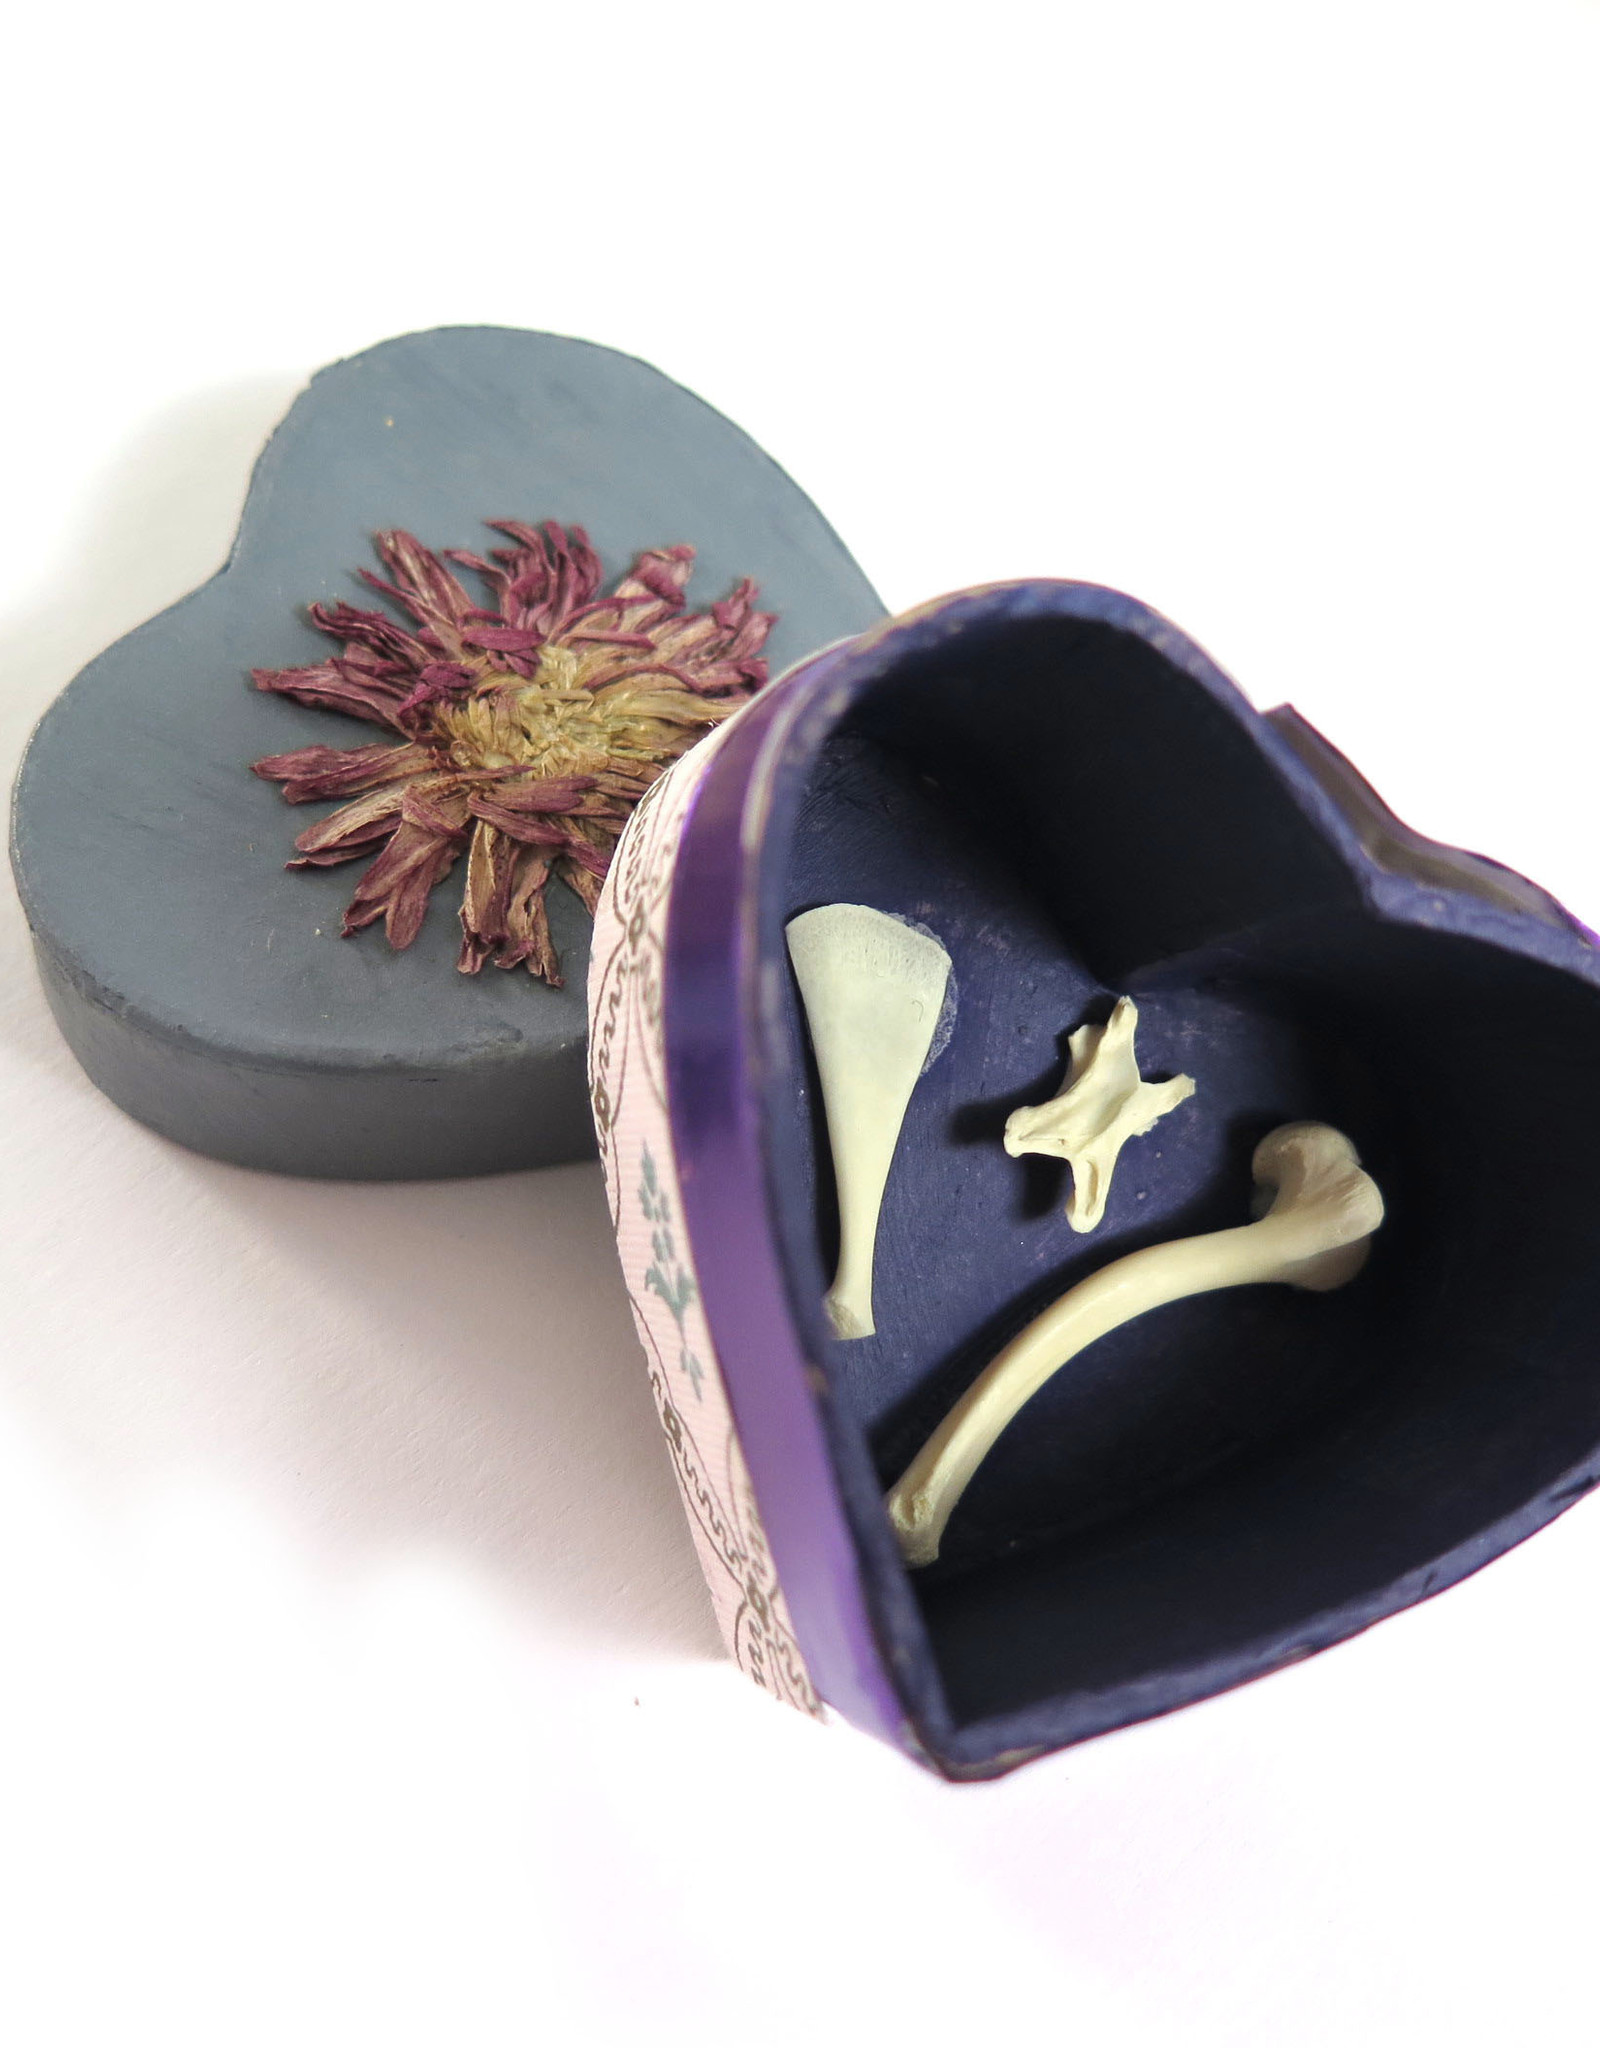 Flower and Bone Heart Box by Spooky Spectacles